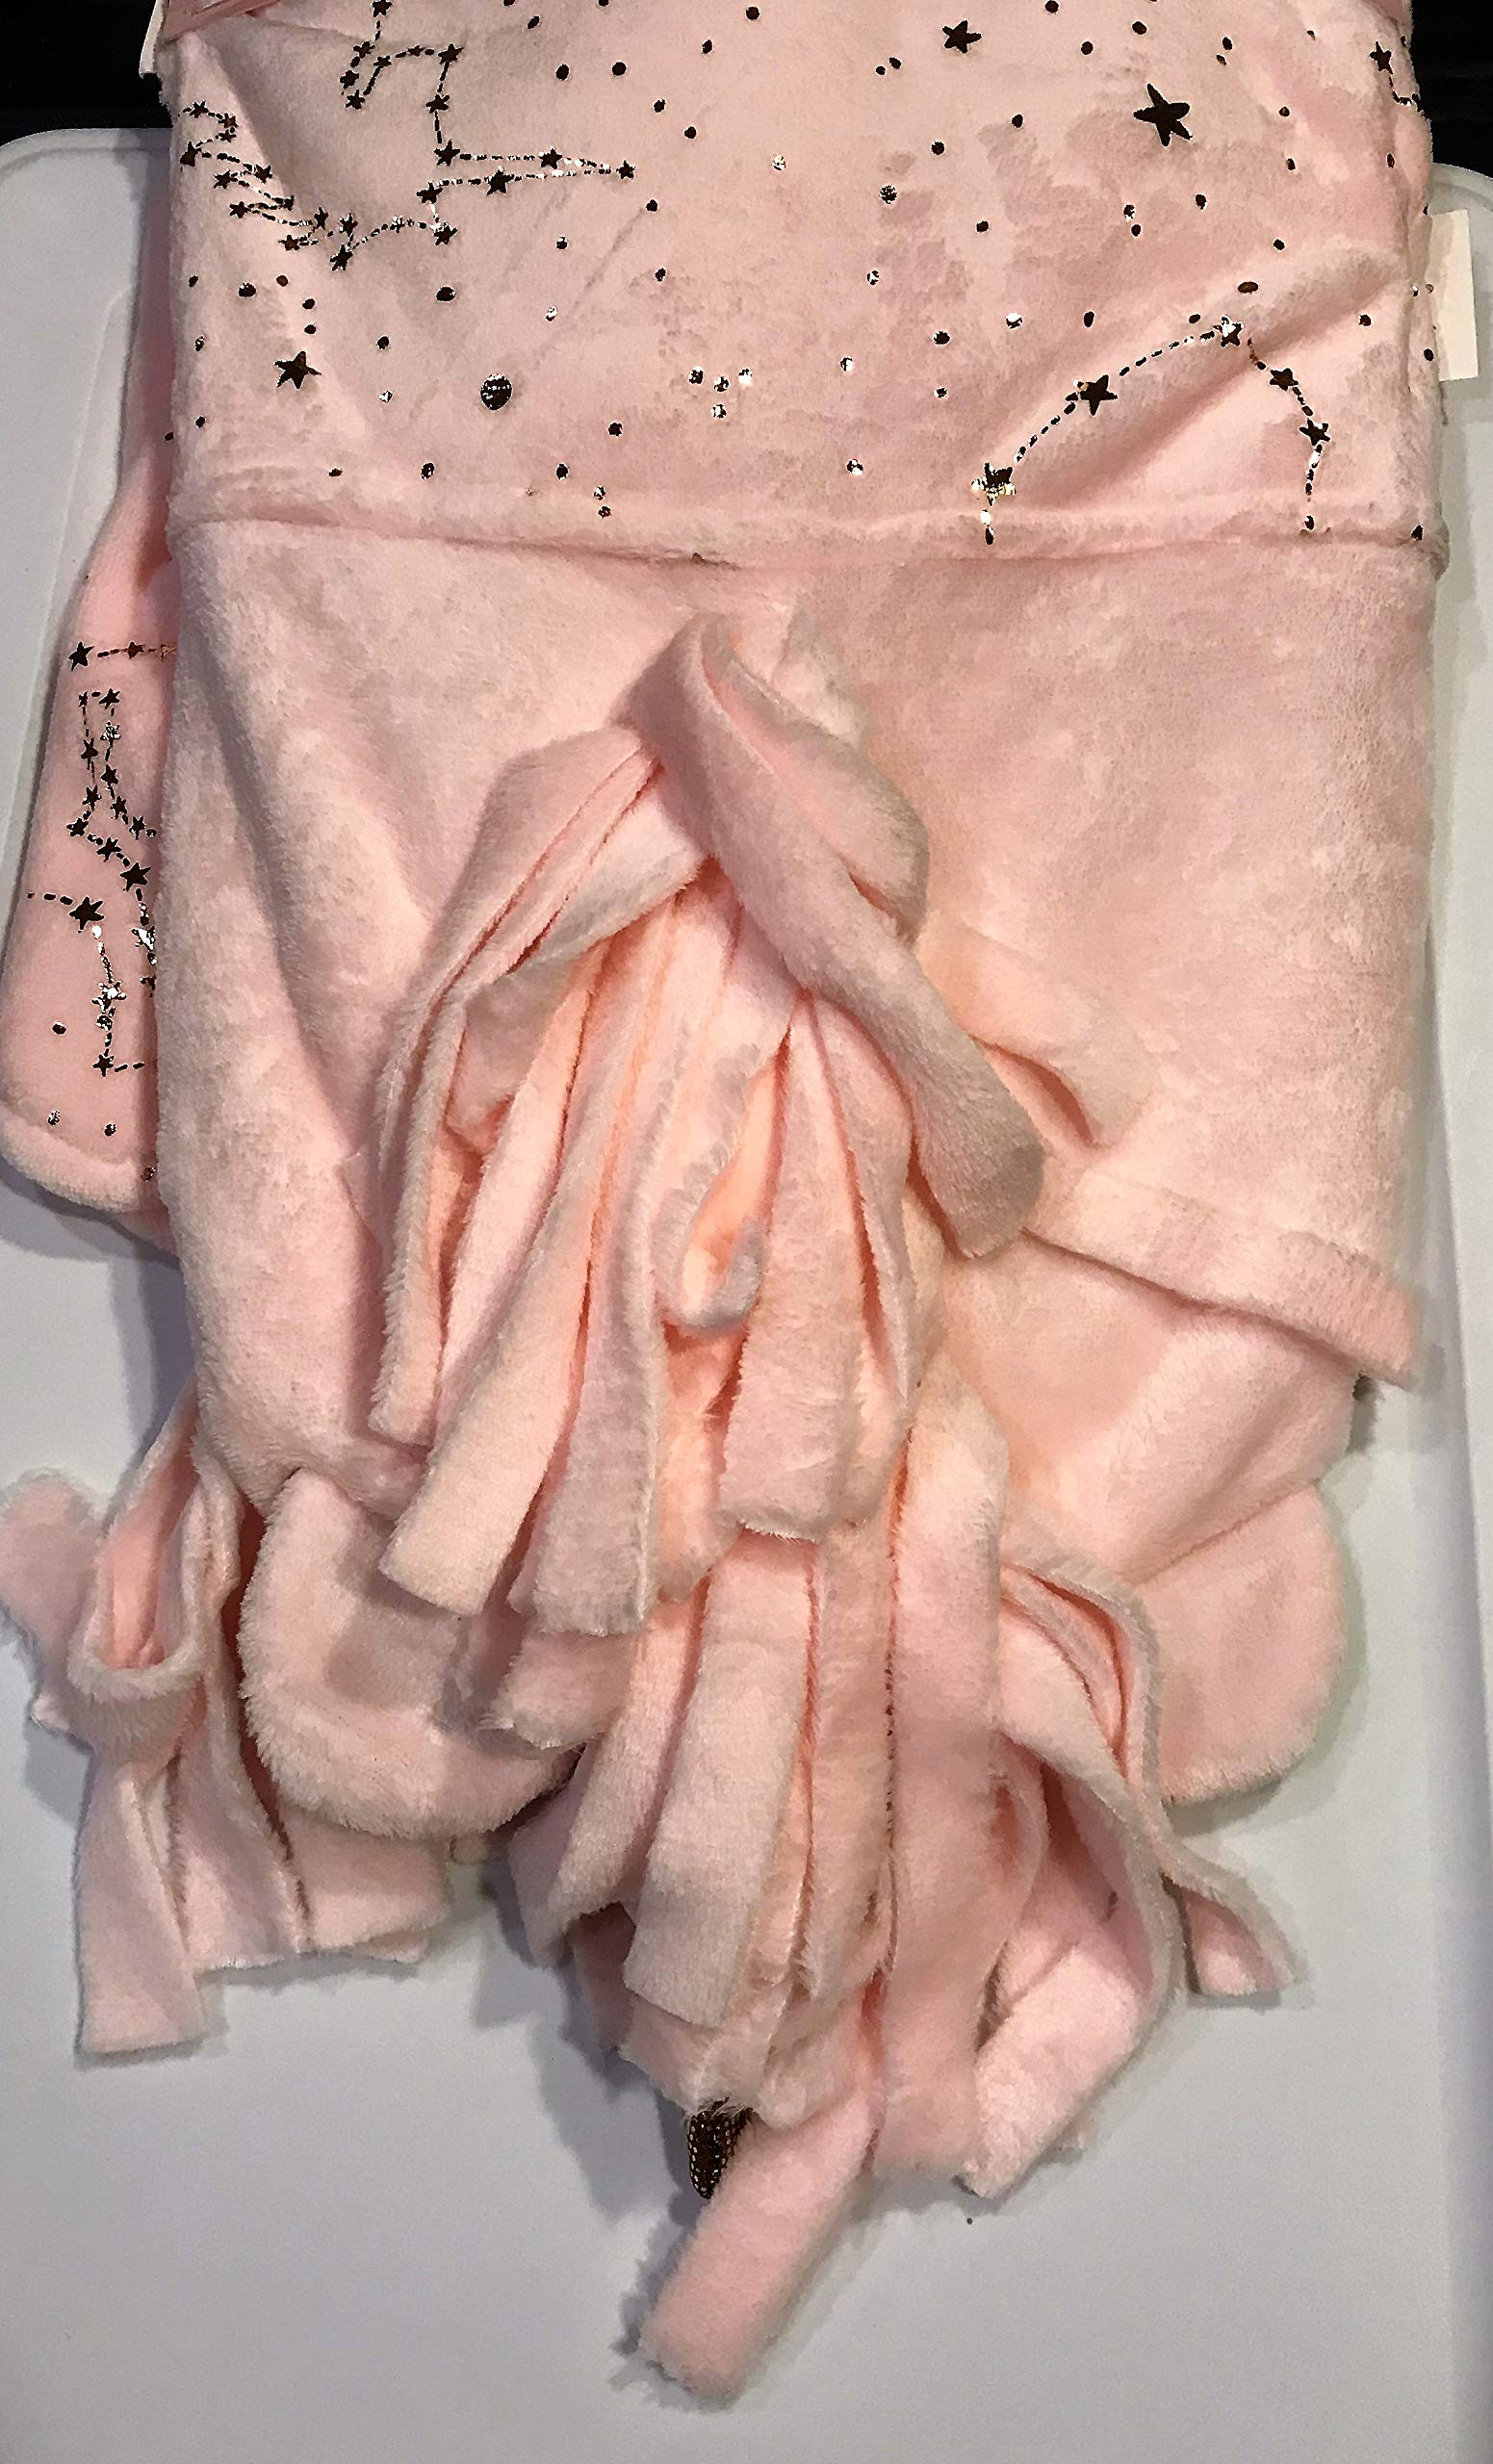 Limited Edition Blankets Nicole Miller Home Kids Soft & Cozy Pink Hooded Blanket (Pink)